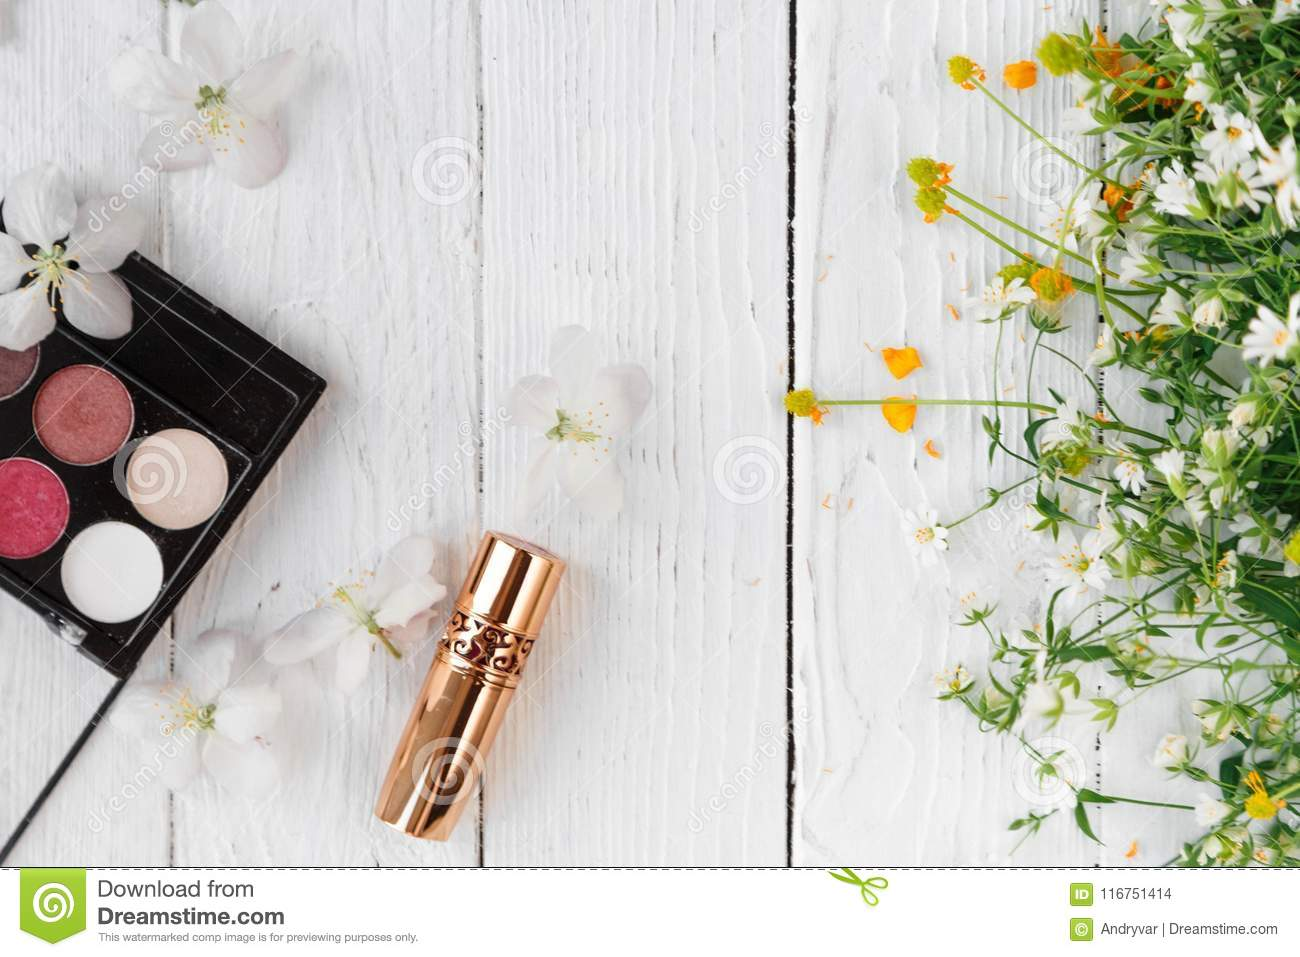 Fresh flowers, decorative cosmetics on a wooden background